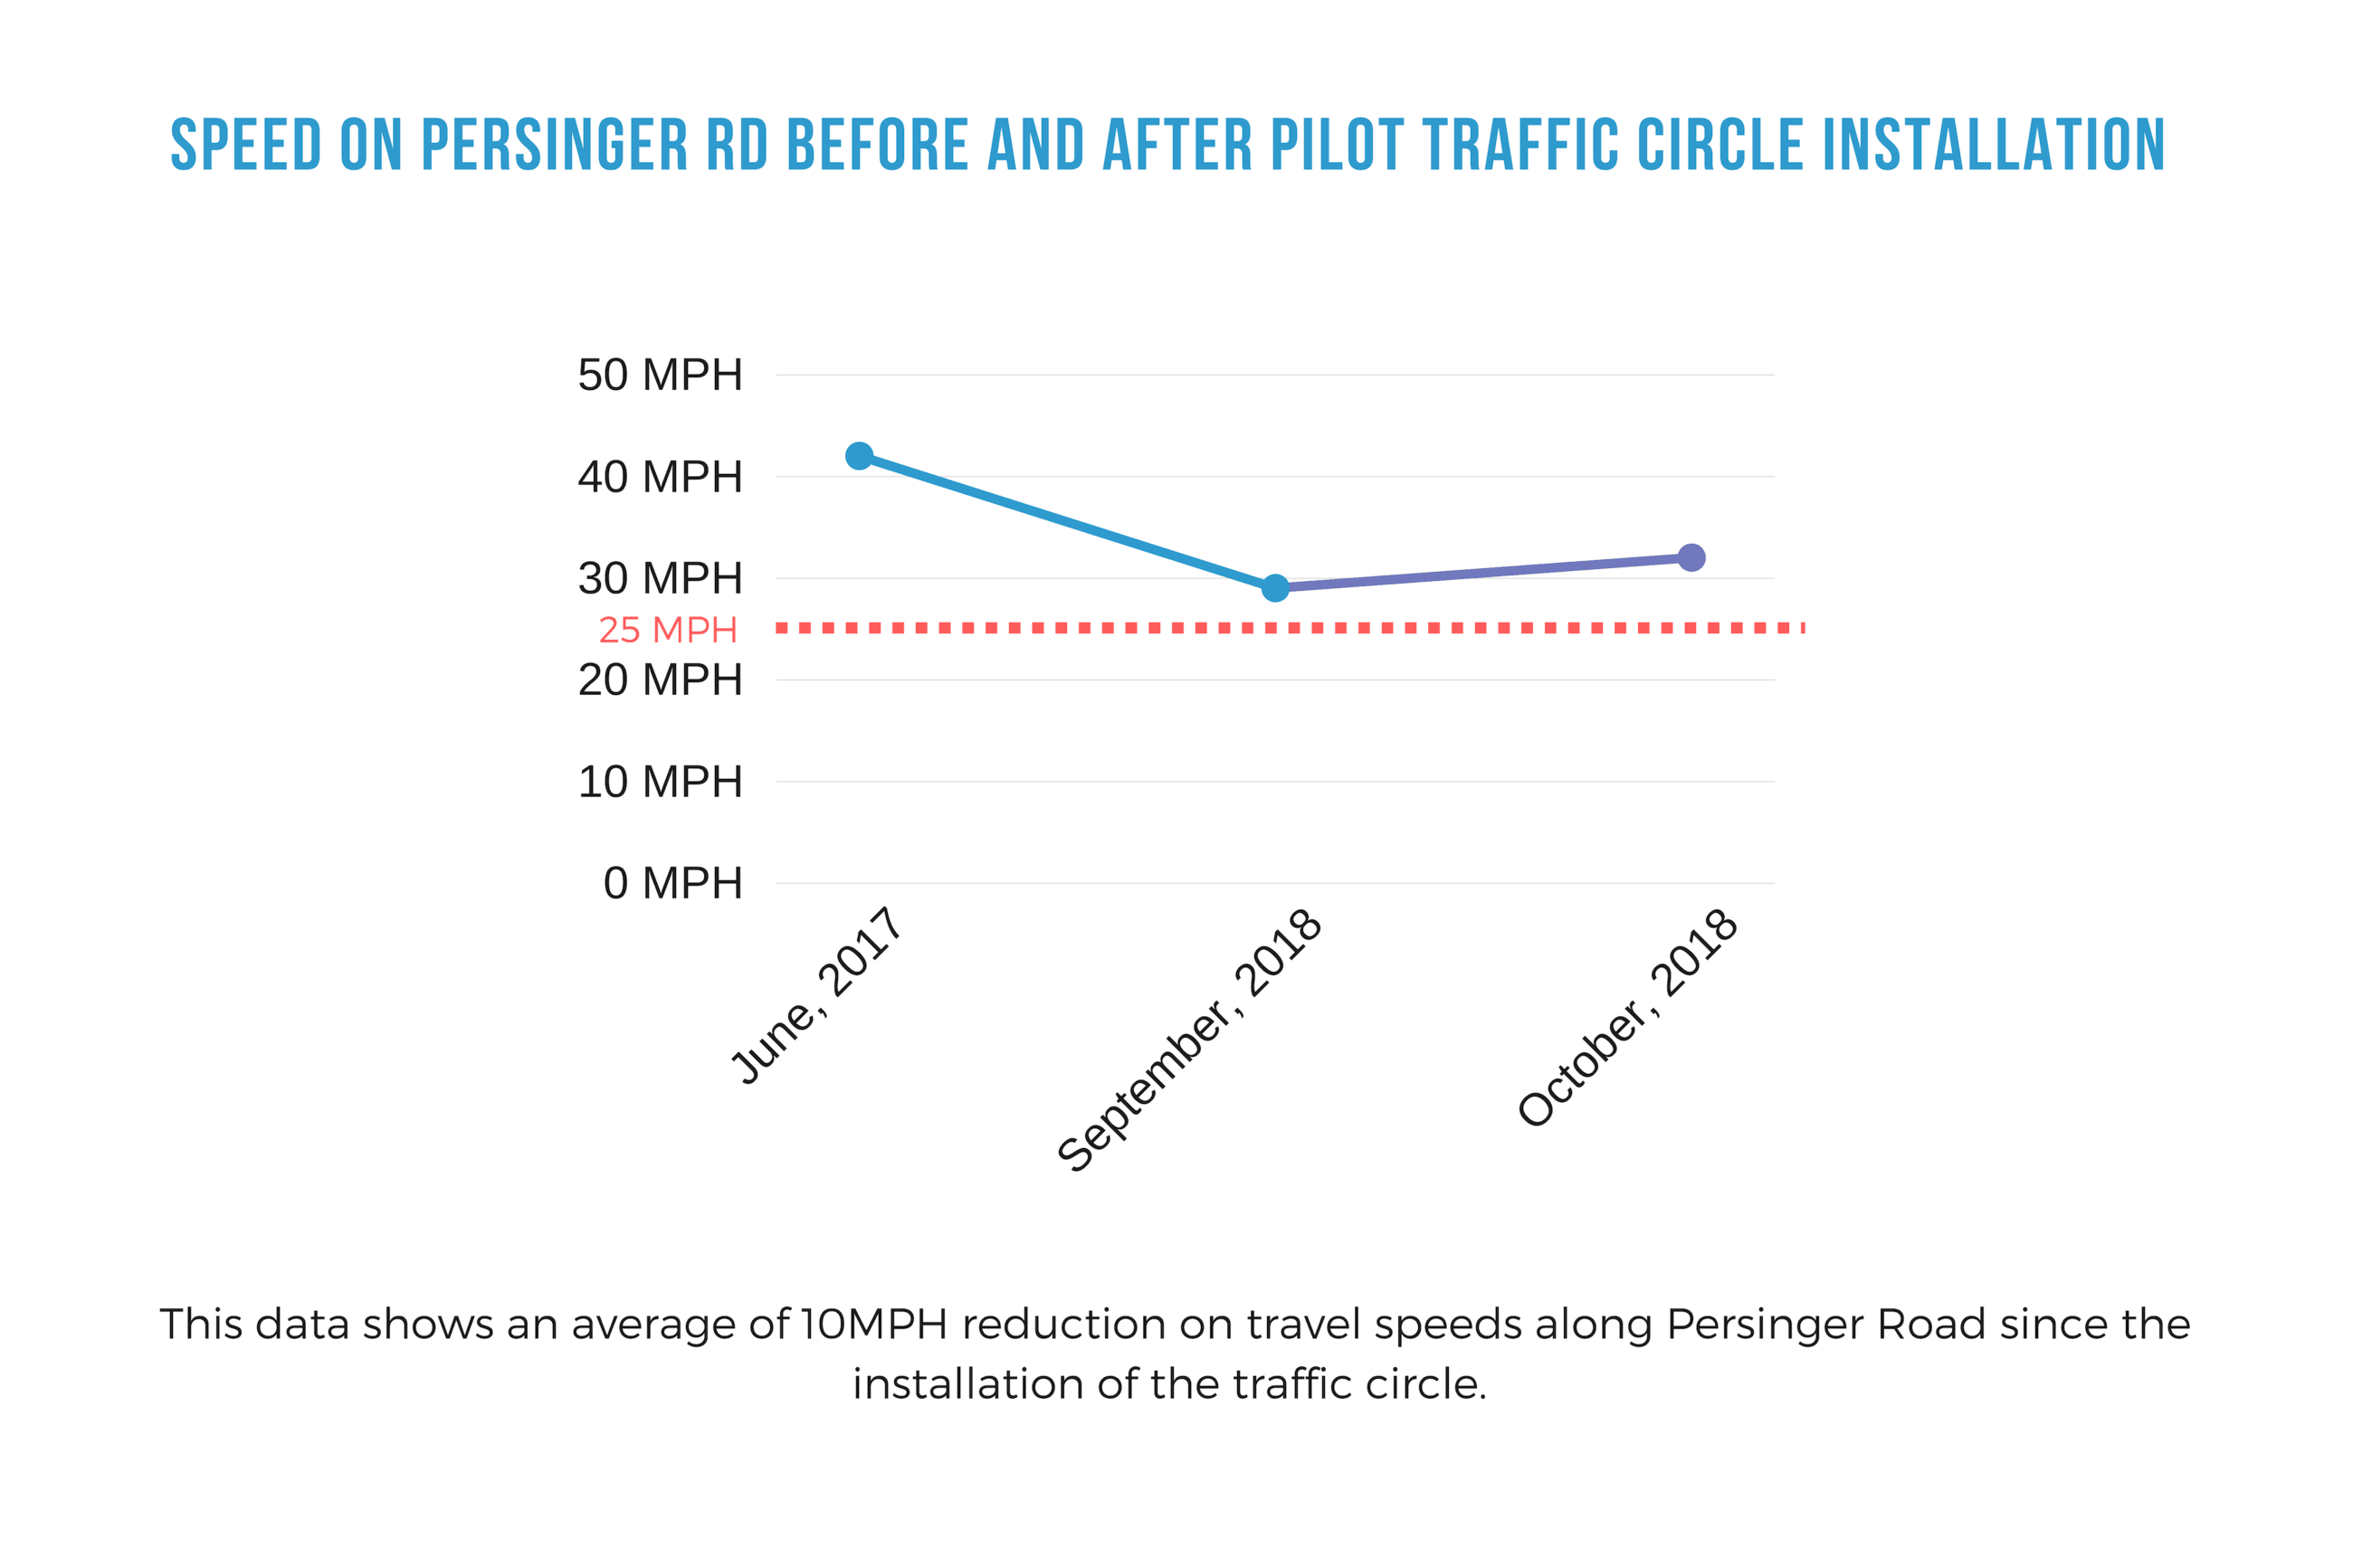 Graphic shows an average of 10 MPH reduction on travel speeds along Persinger Road